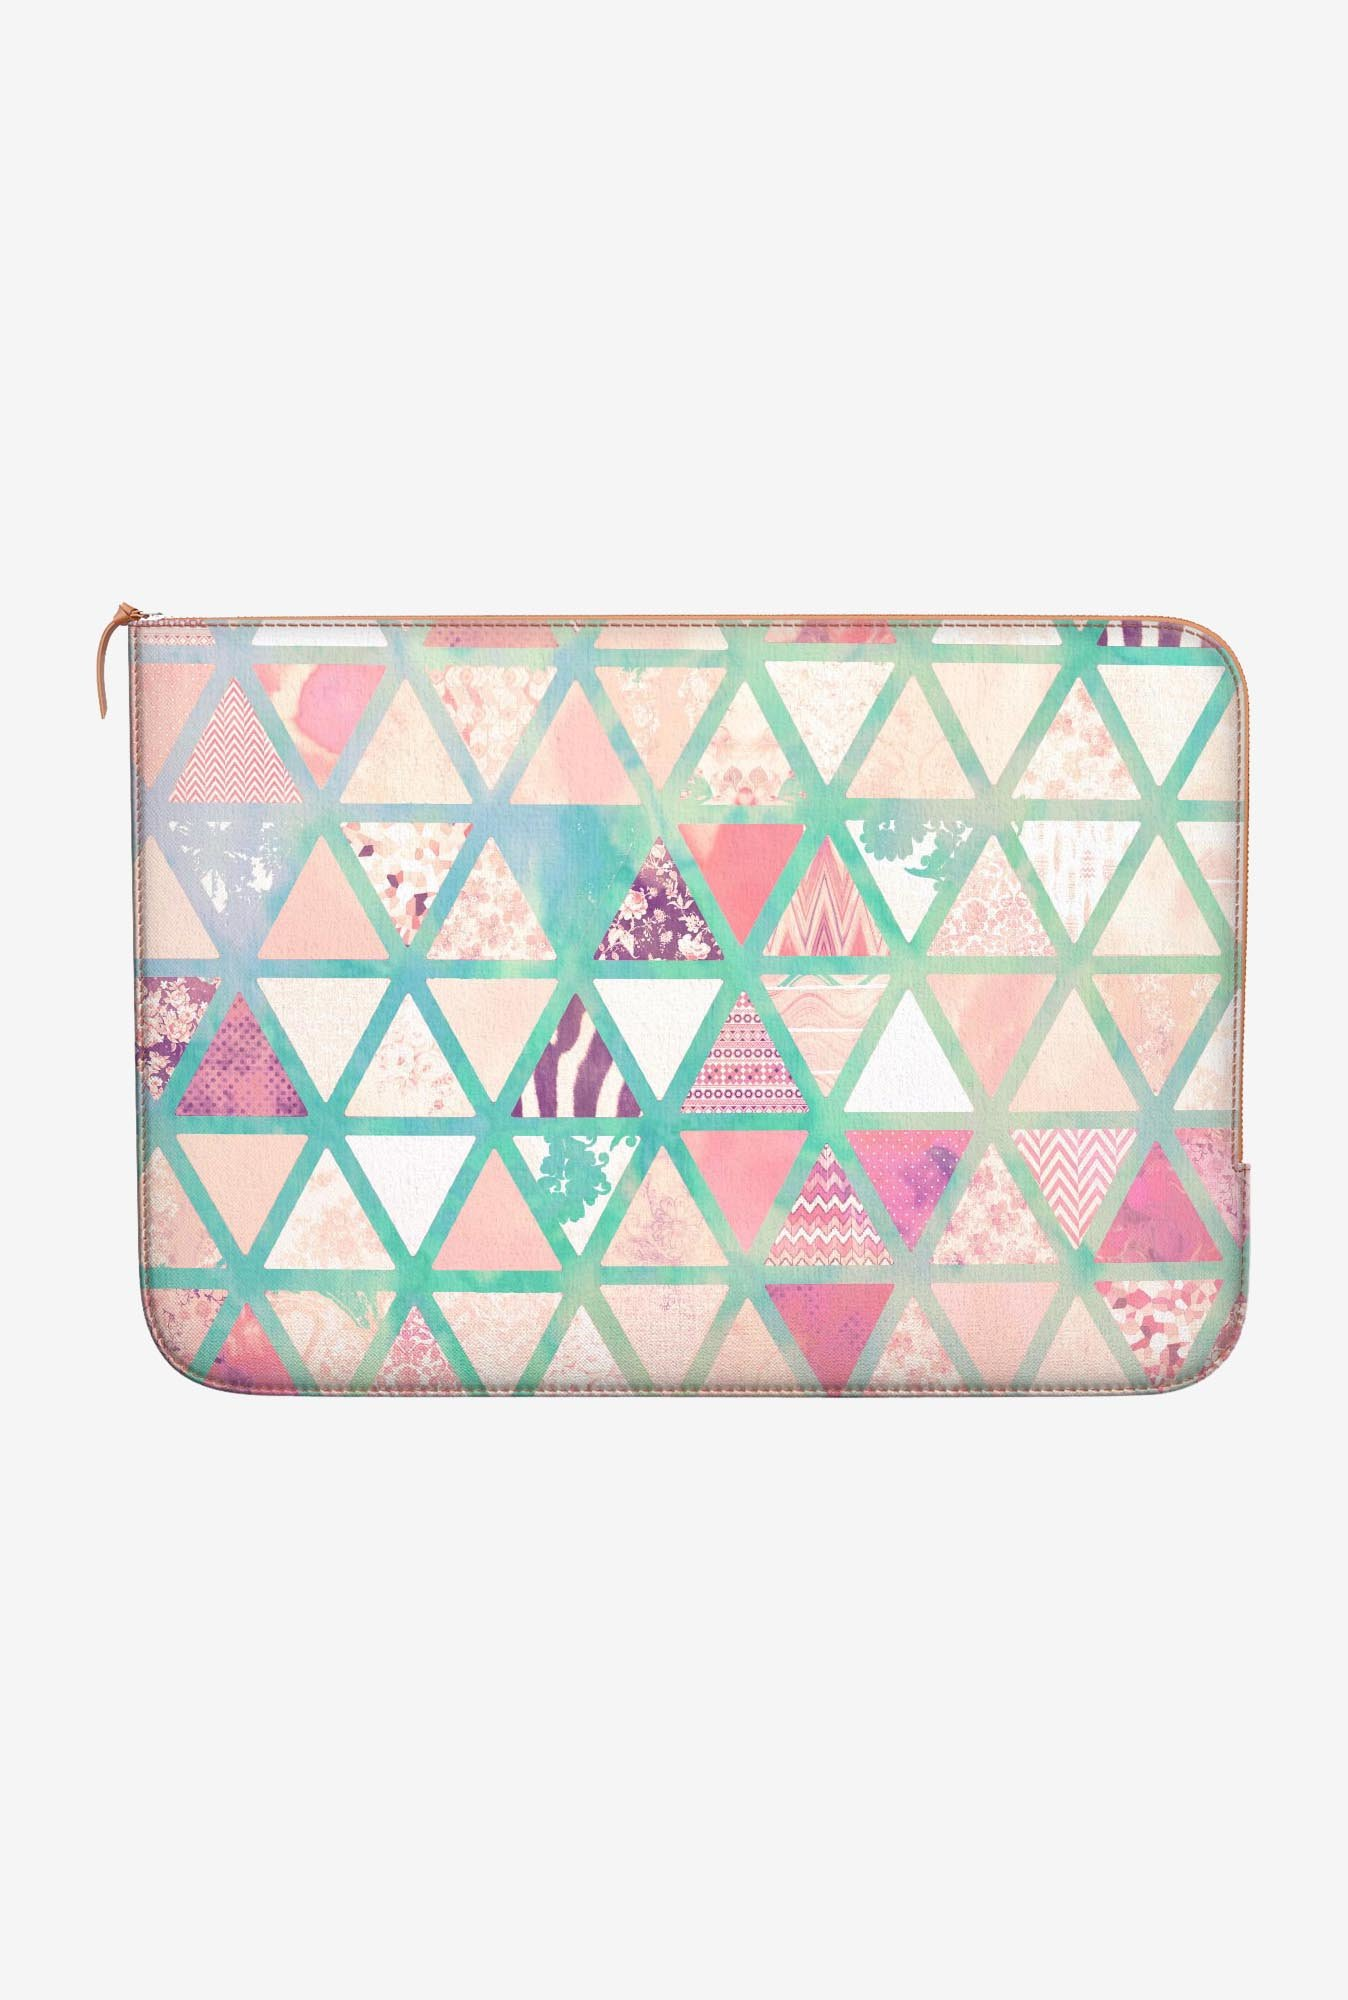 DailyObjects Triangles Patch MacBook Pro 13 Zippered Sleeve